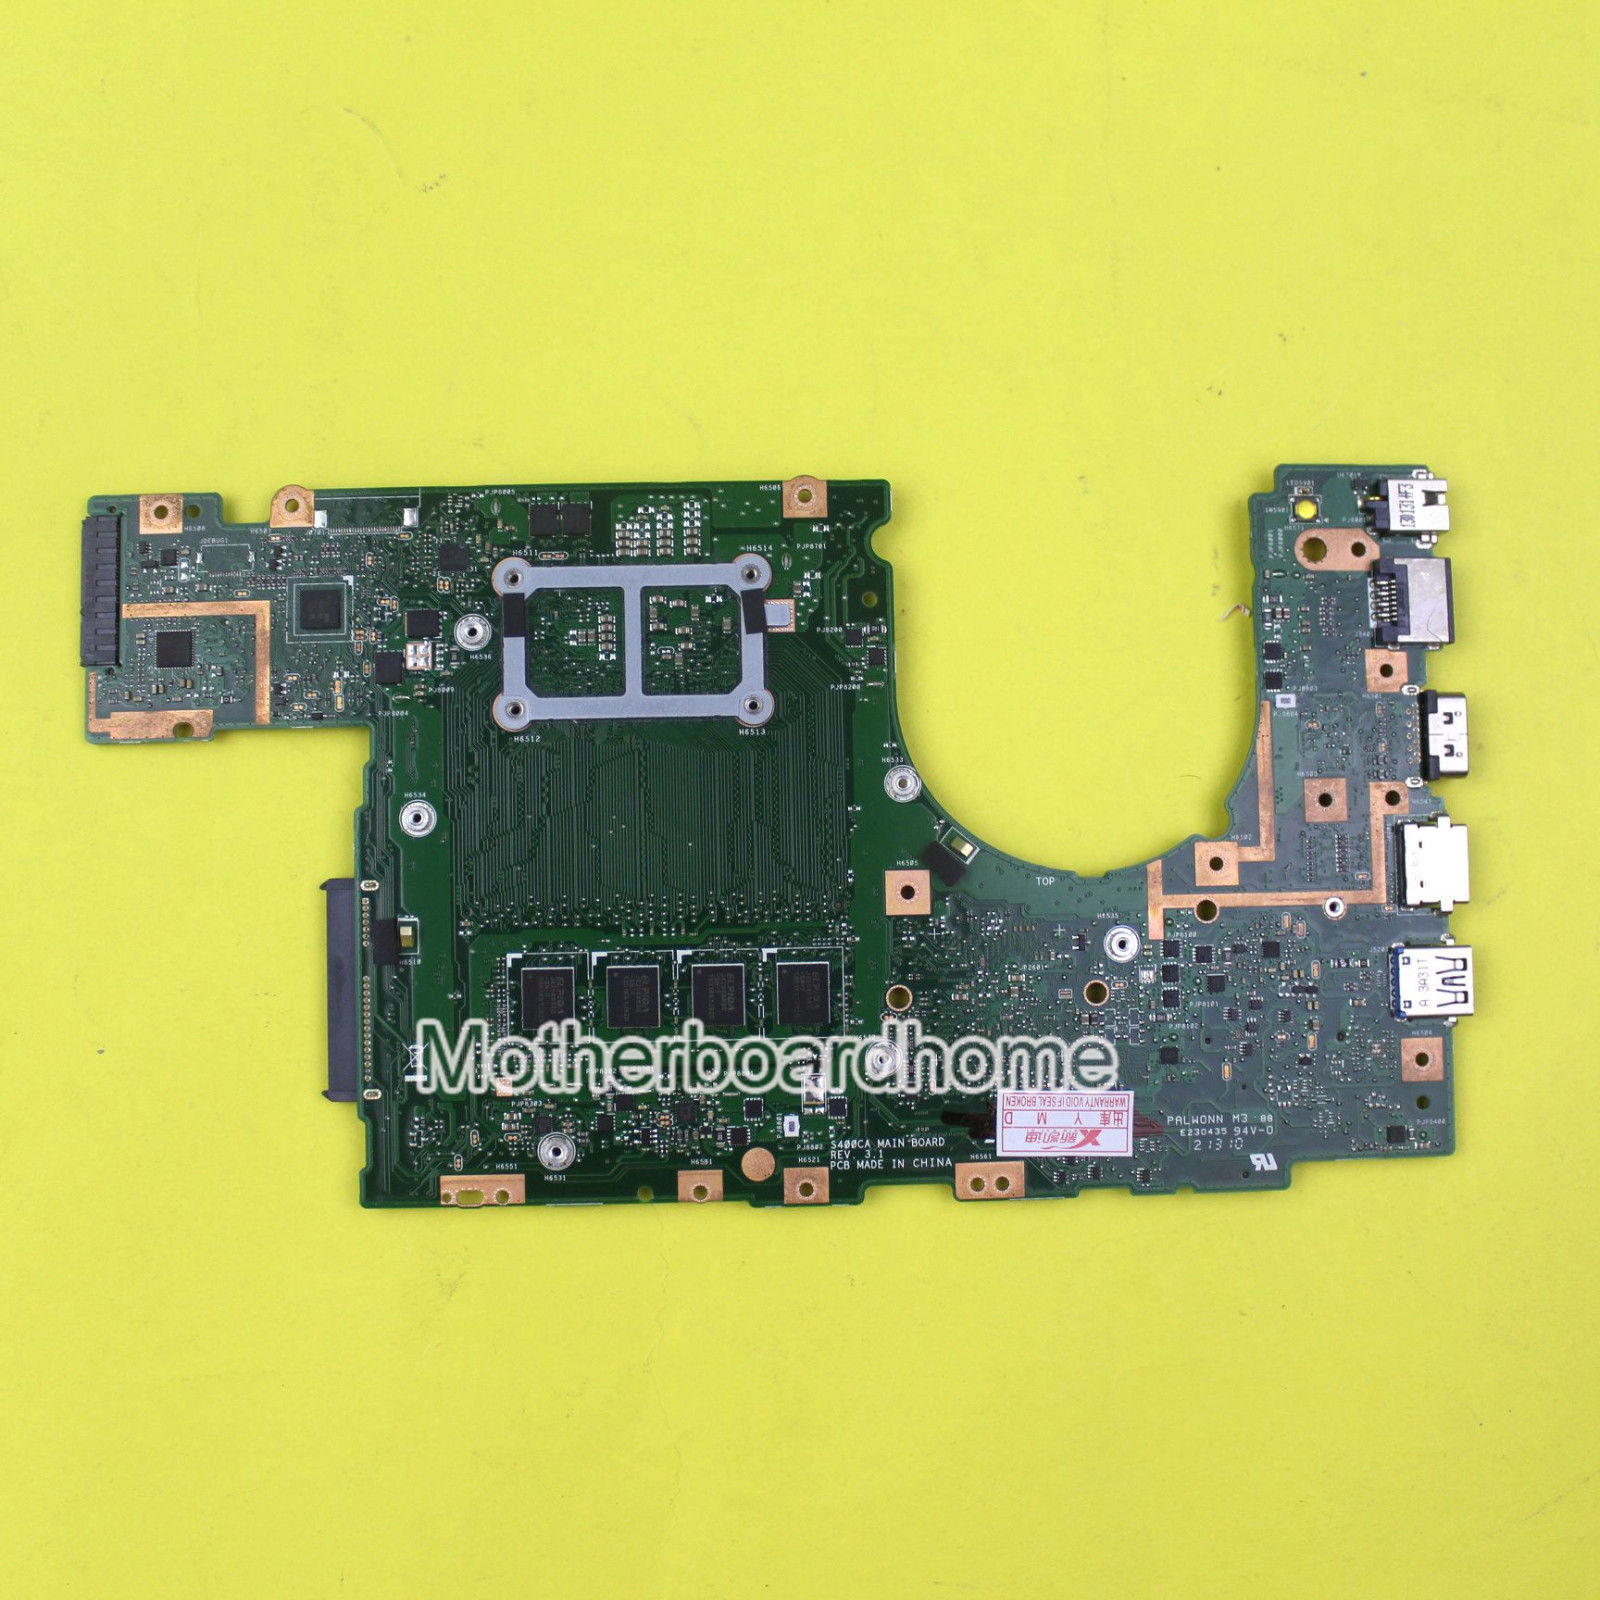 For ASUS S400CA Motherboard w/ Intel i7 CPU REV3.1 4GB Mainboard 60NB0050-MB2010